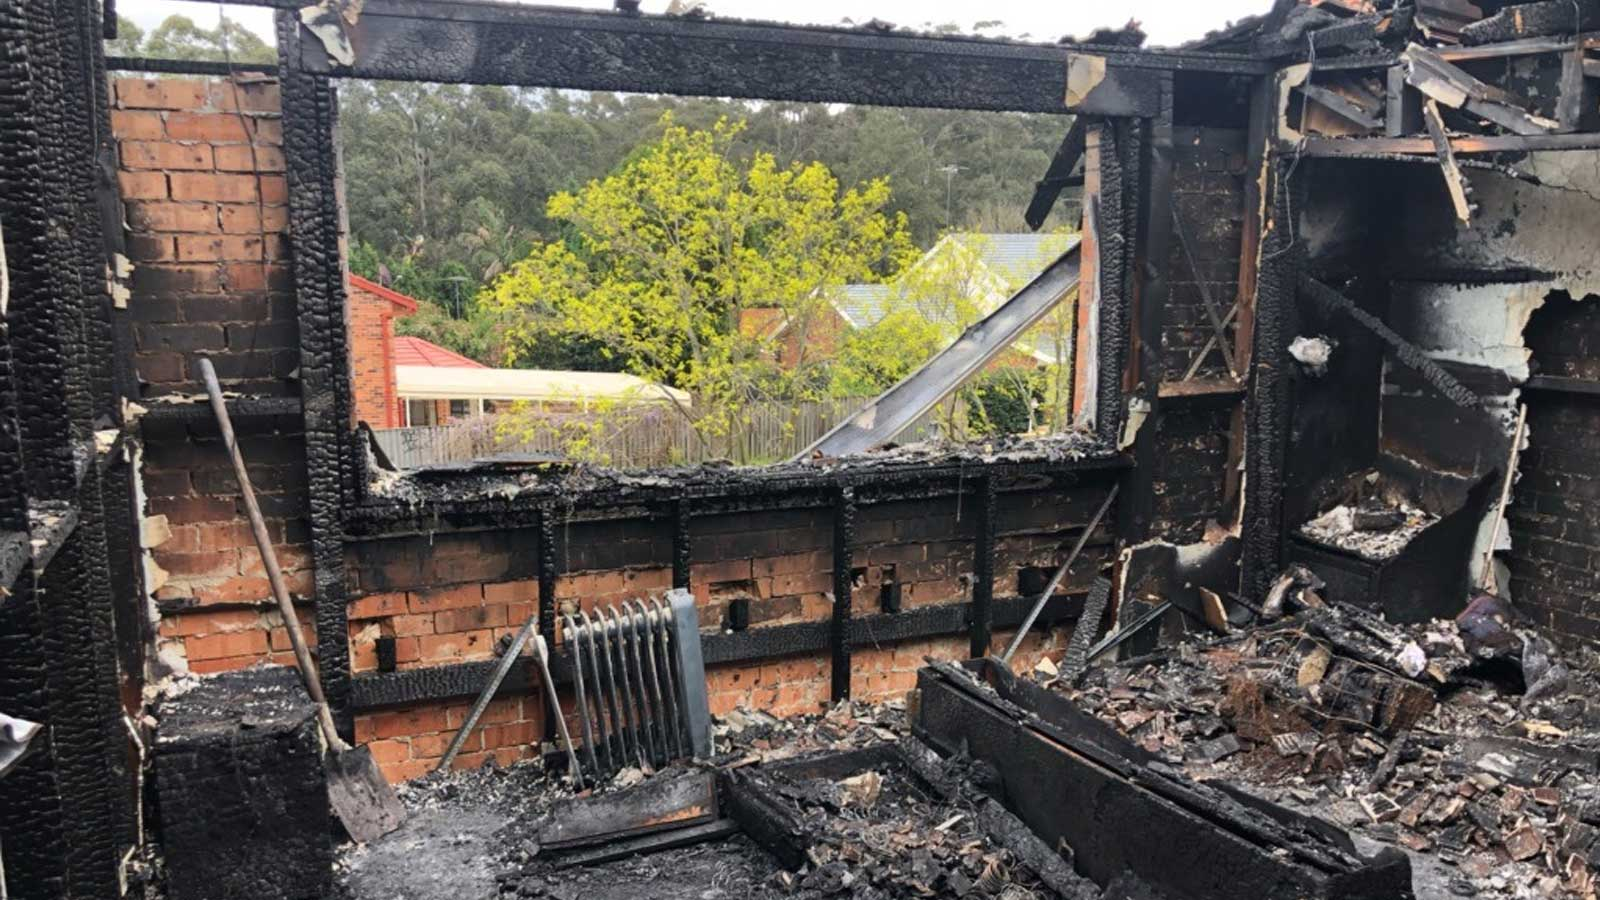 A family home destroyed by fire